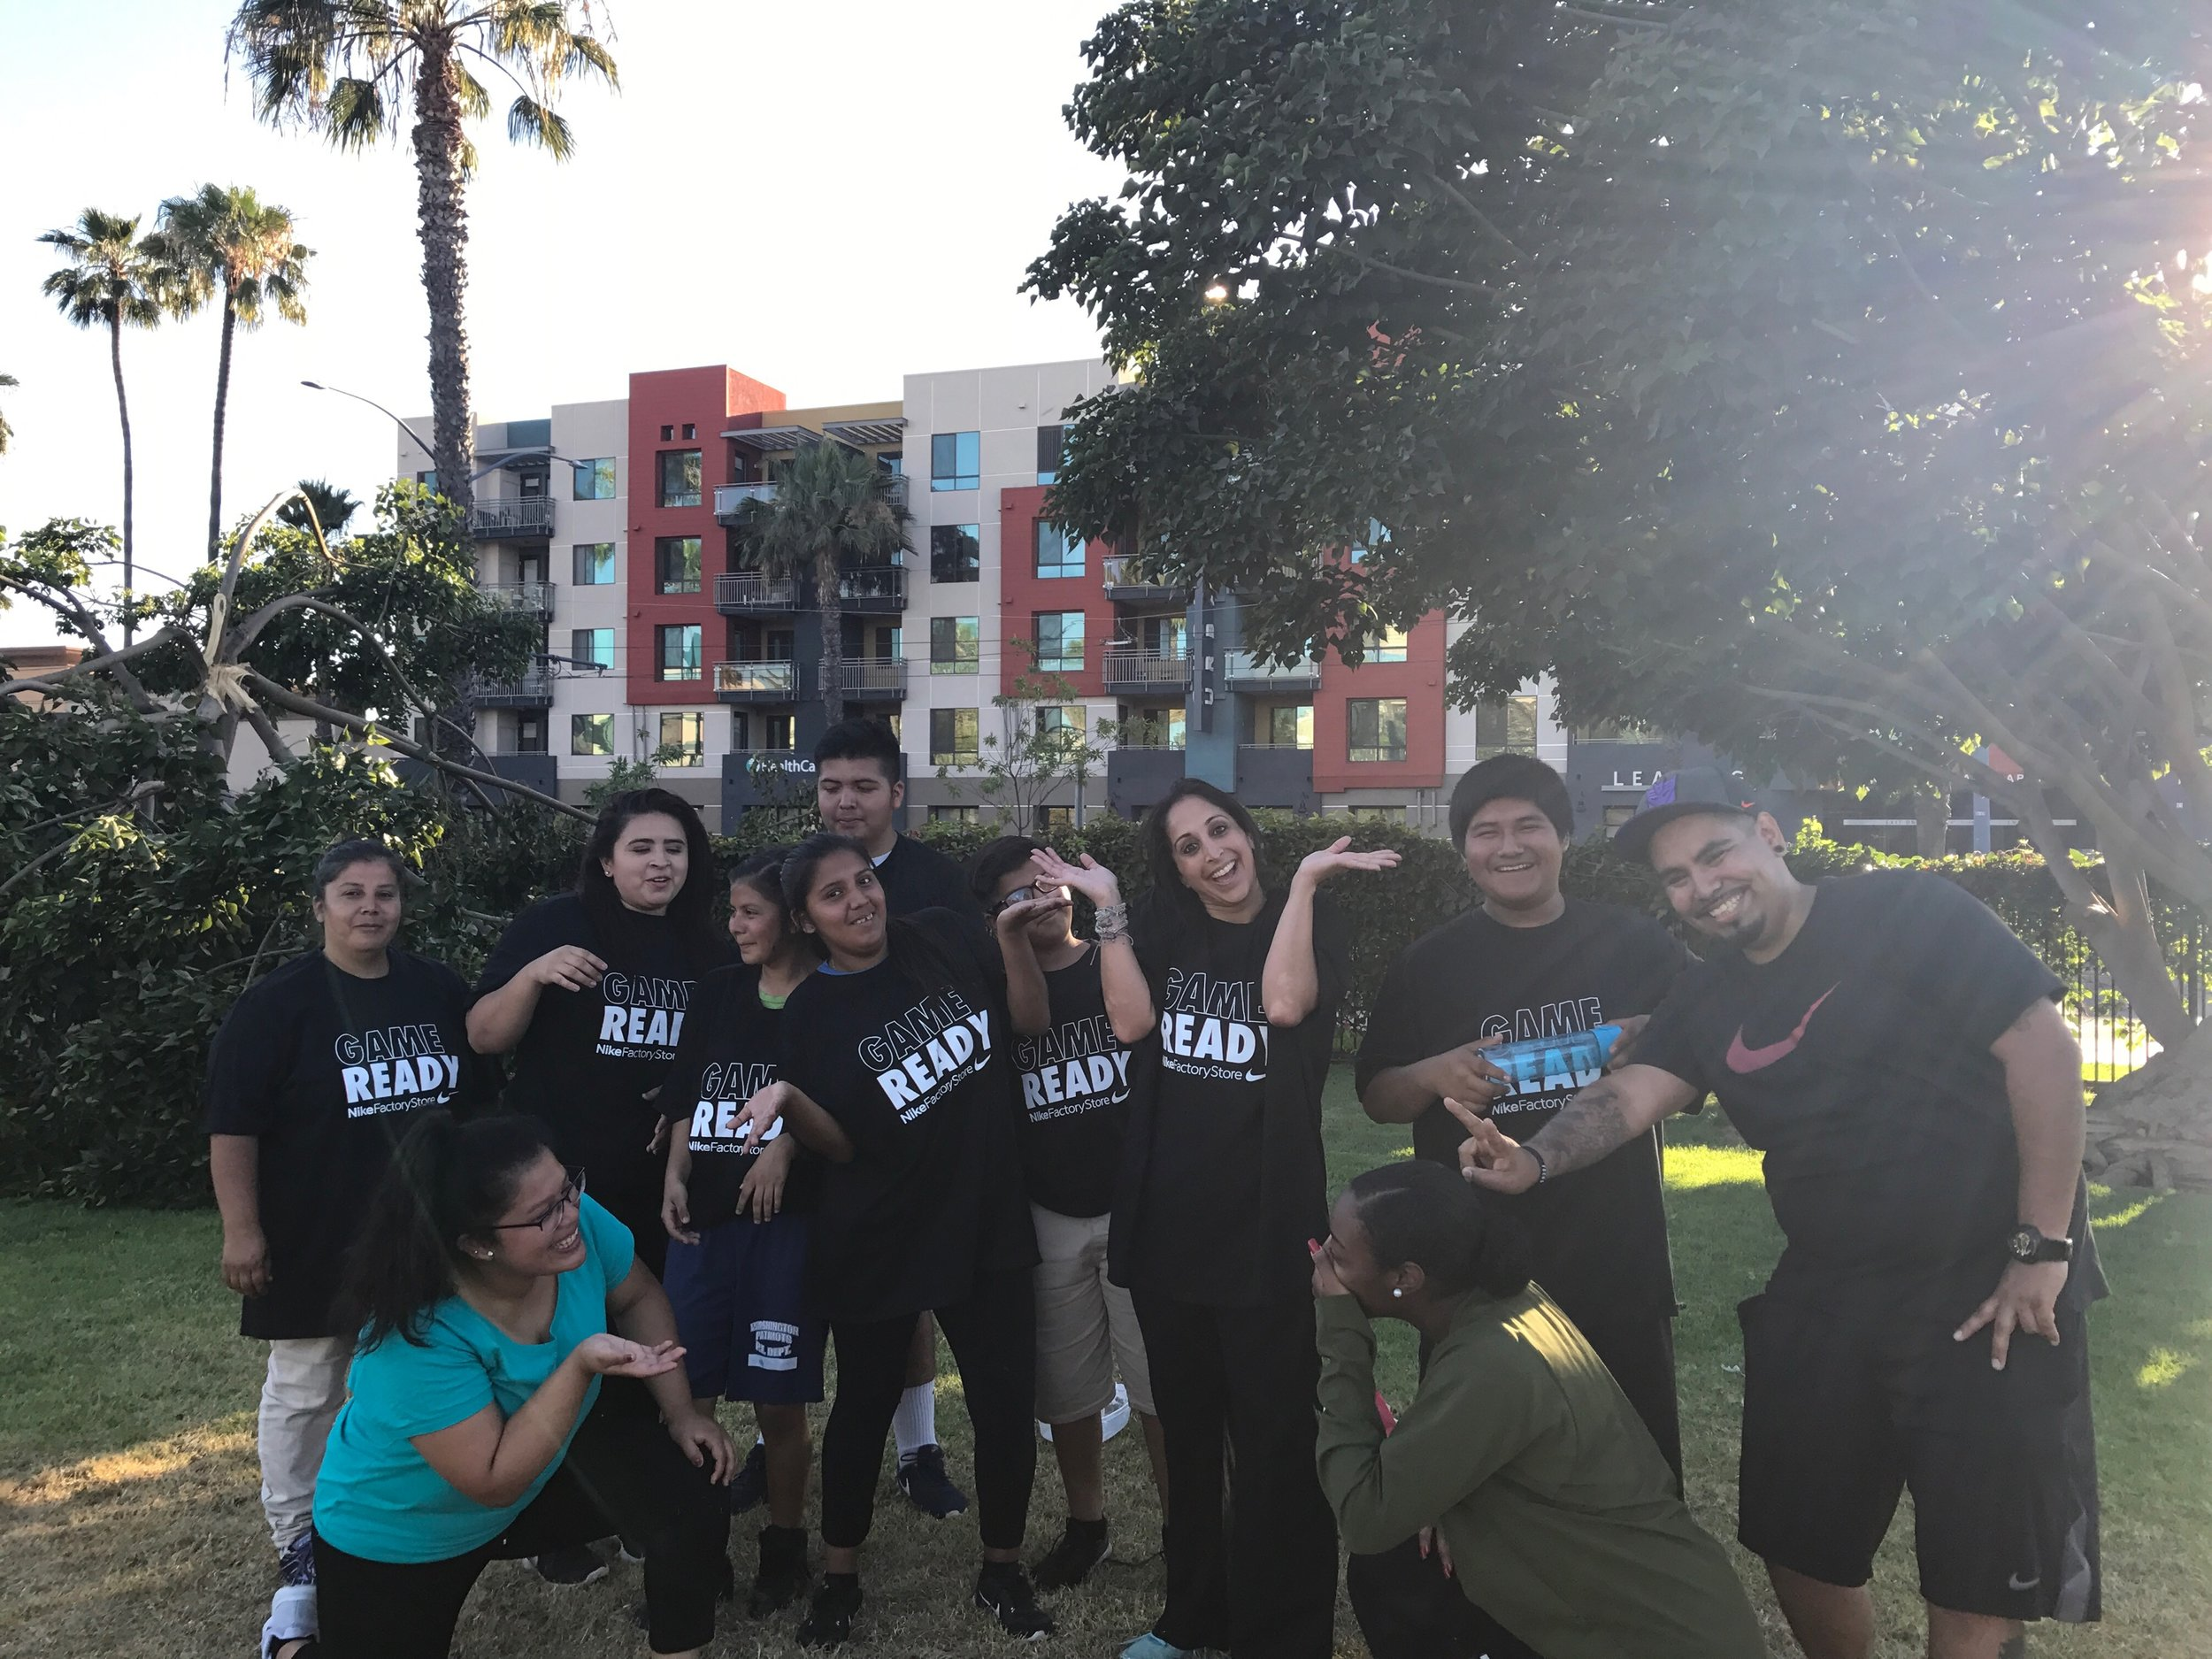 Fit and Fun Support Group with Nike! - Had a blast playing soccer with our group!